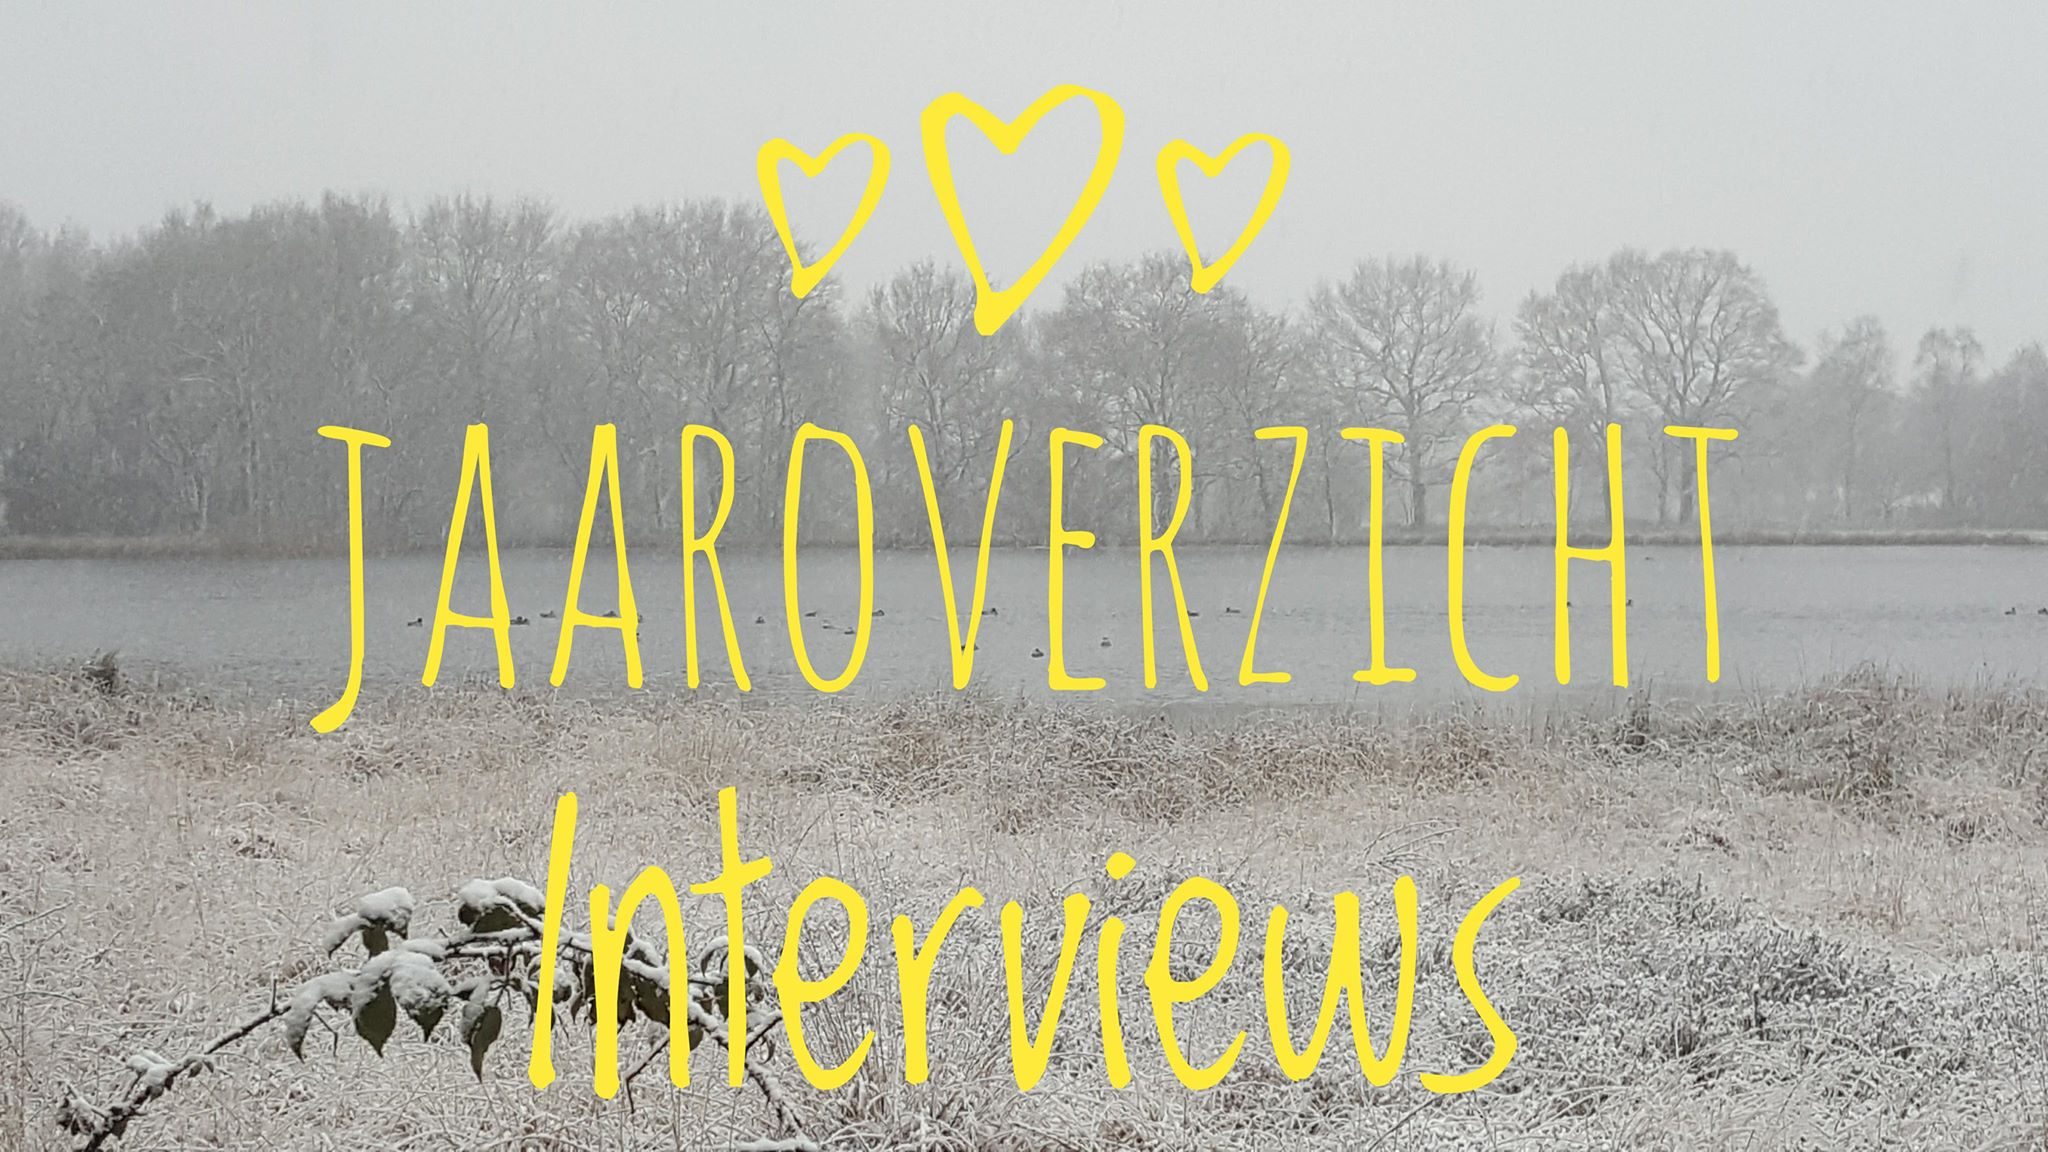 Jaaroverzicht Interviews